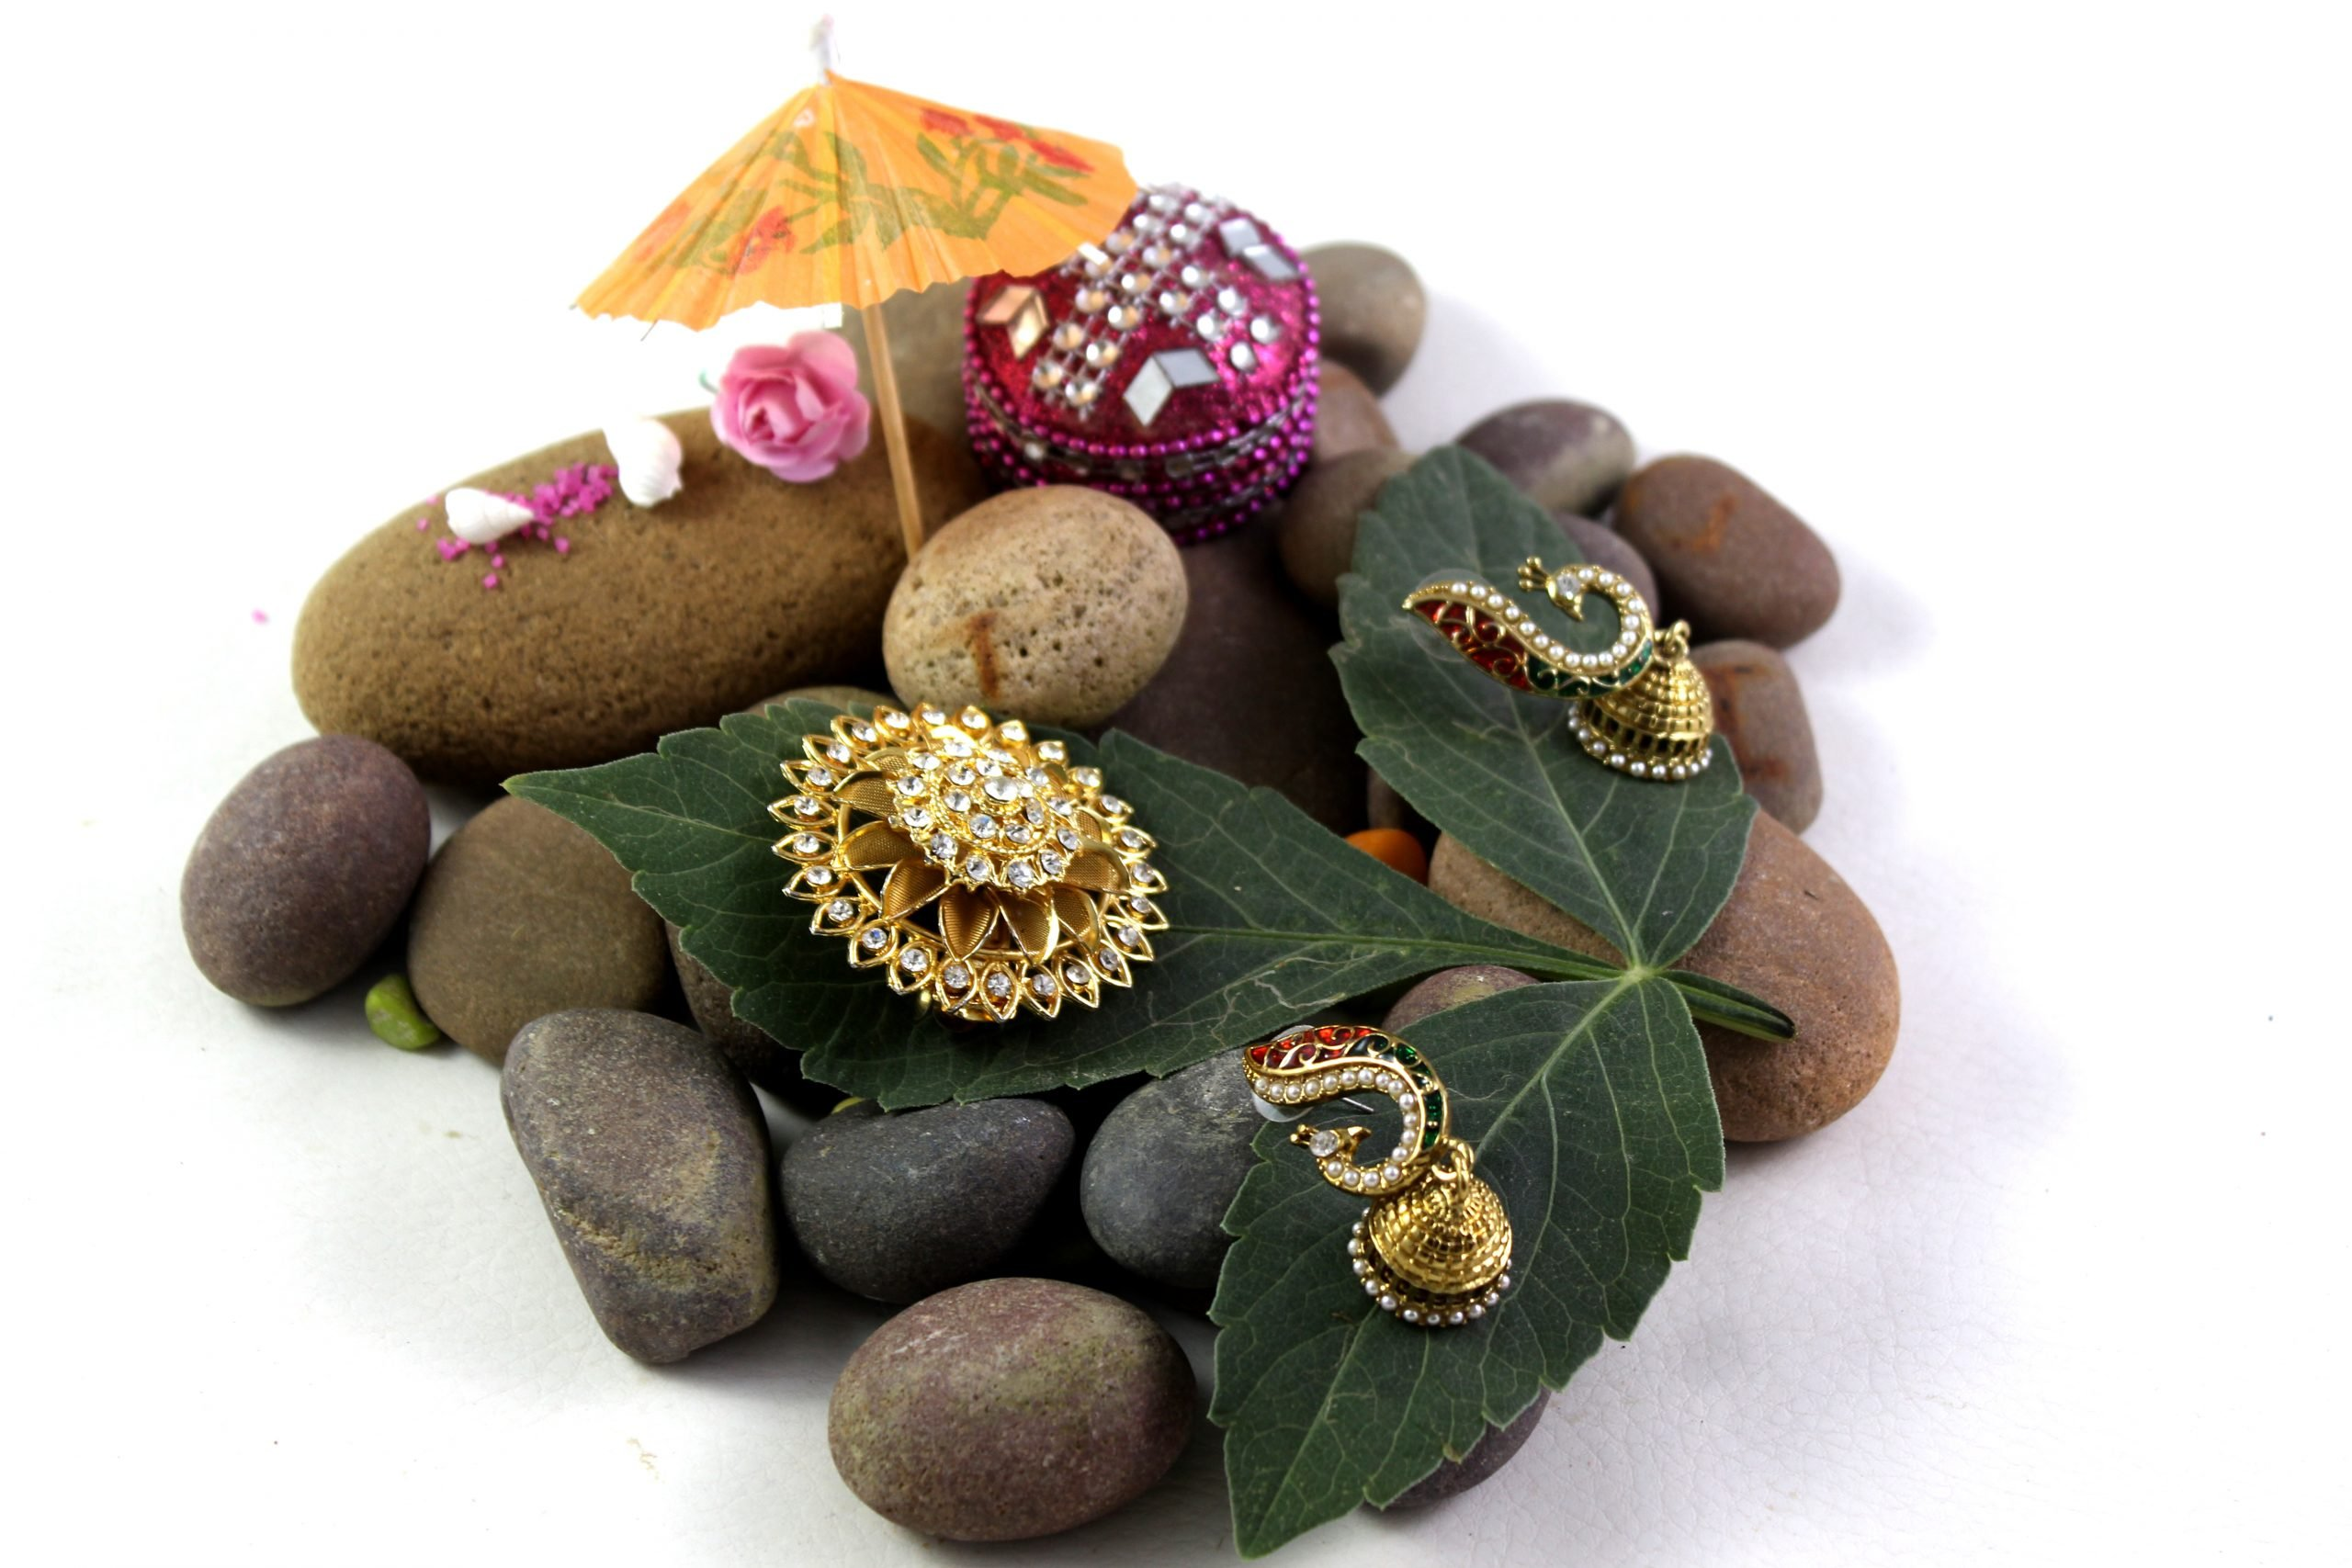 Jewelry pieces on stones